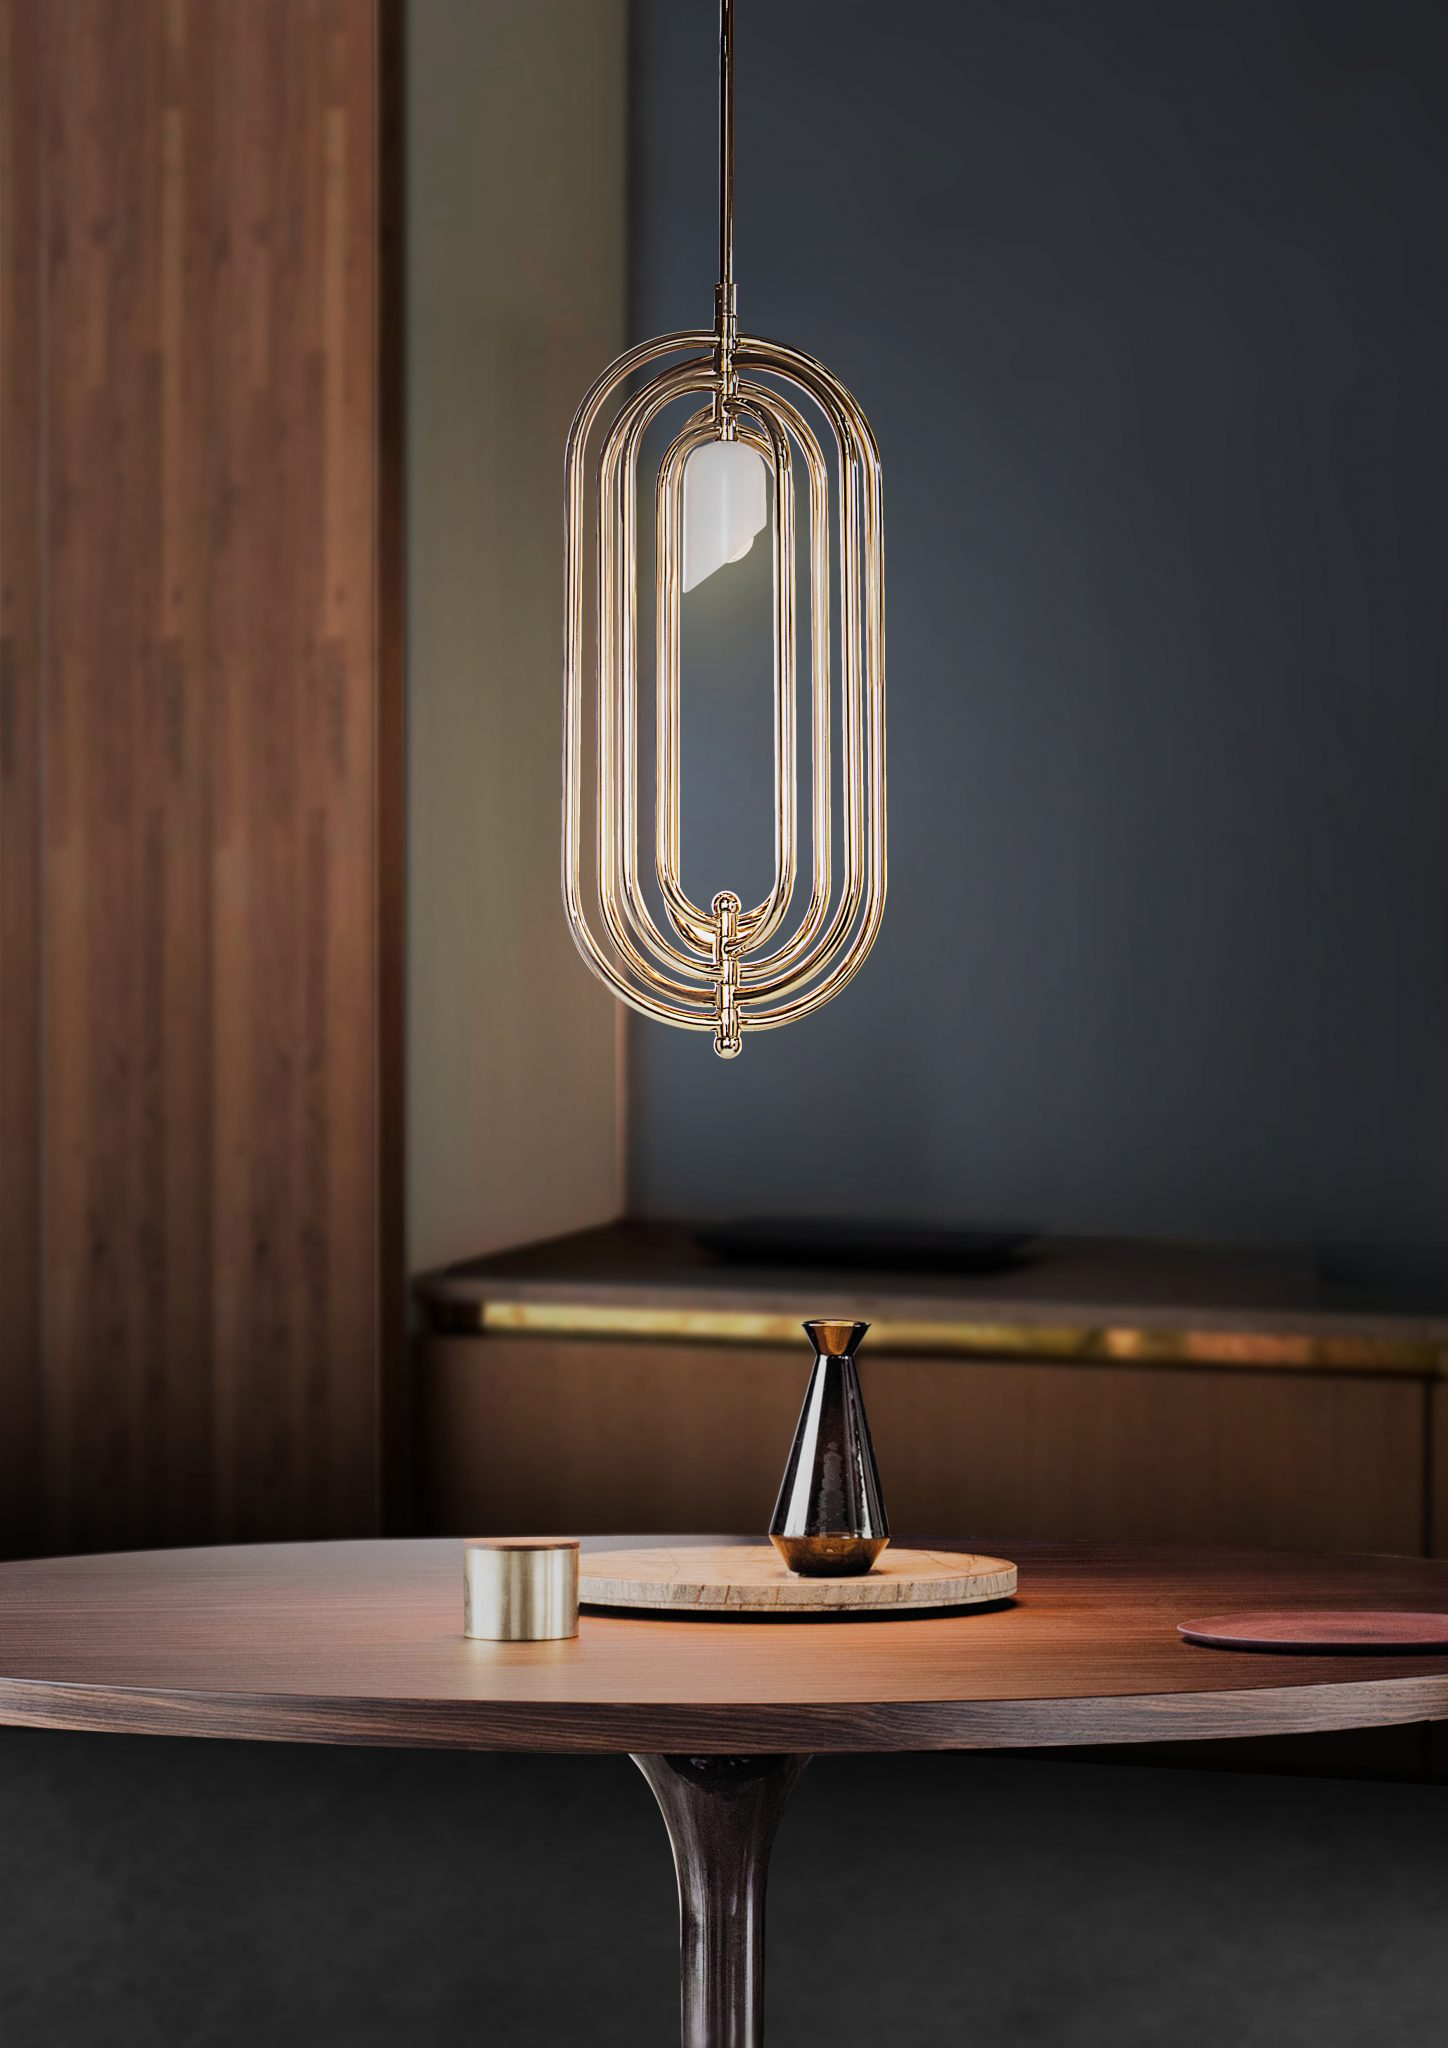 INCREDIBLE MID-CENTURY MODERN LAMPS TO GET YOU INSPIRED